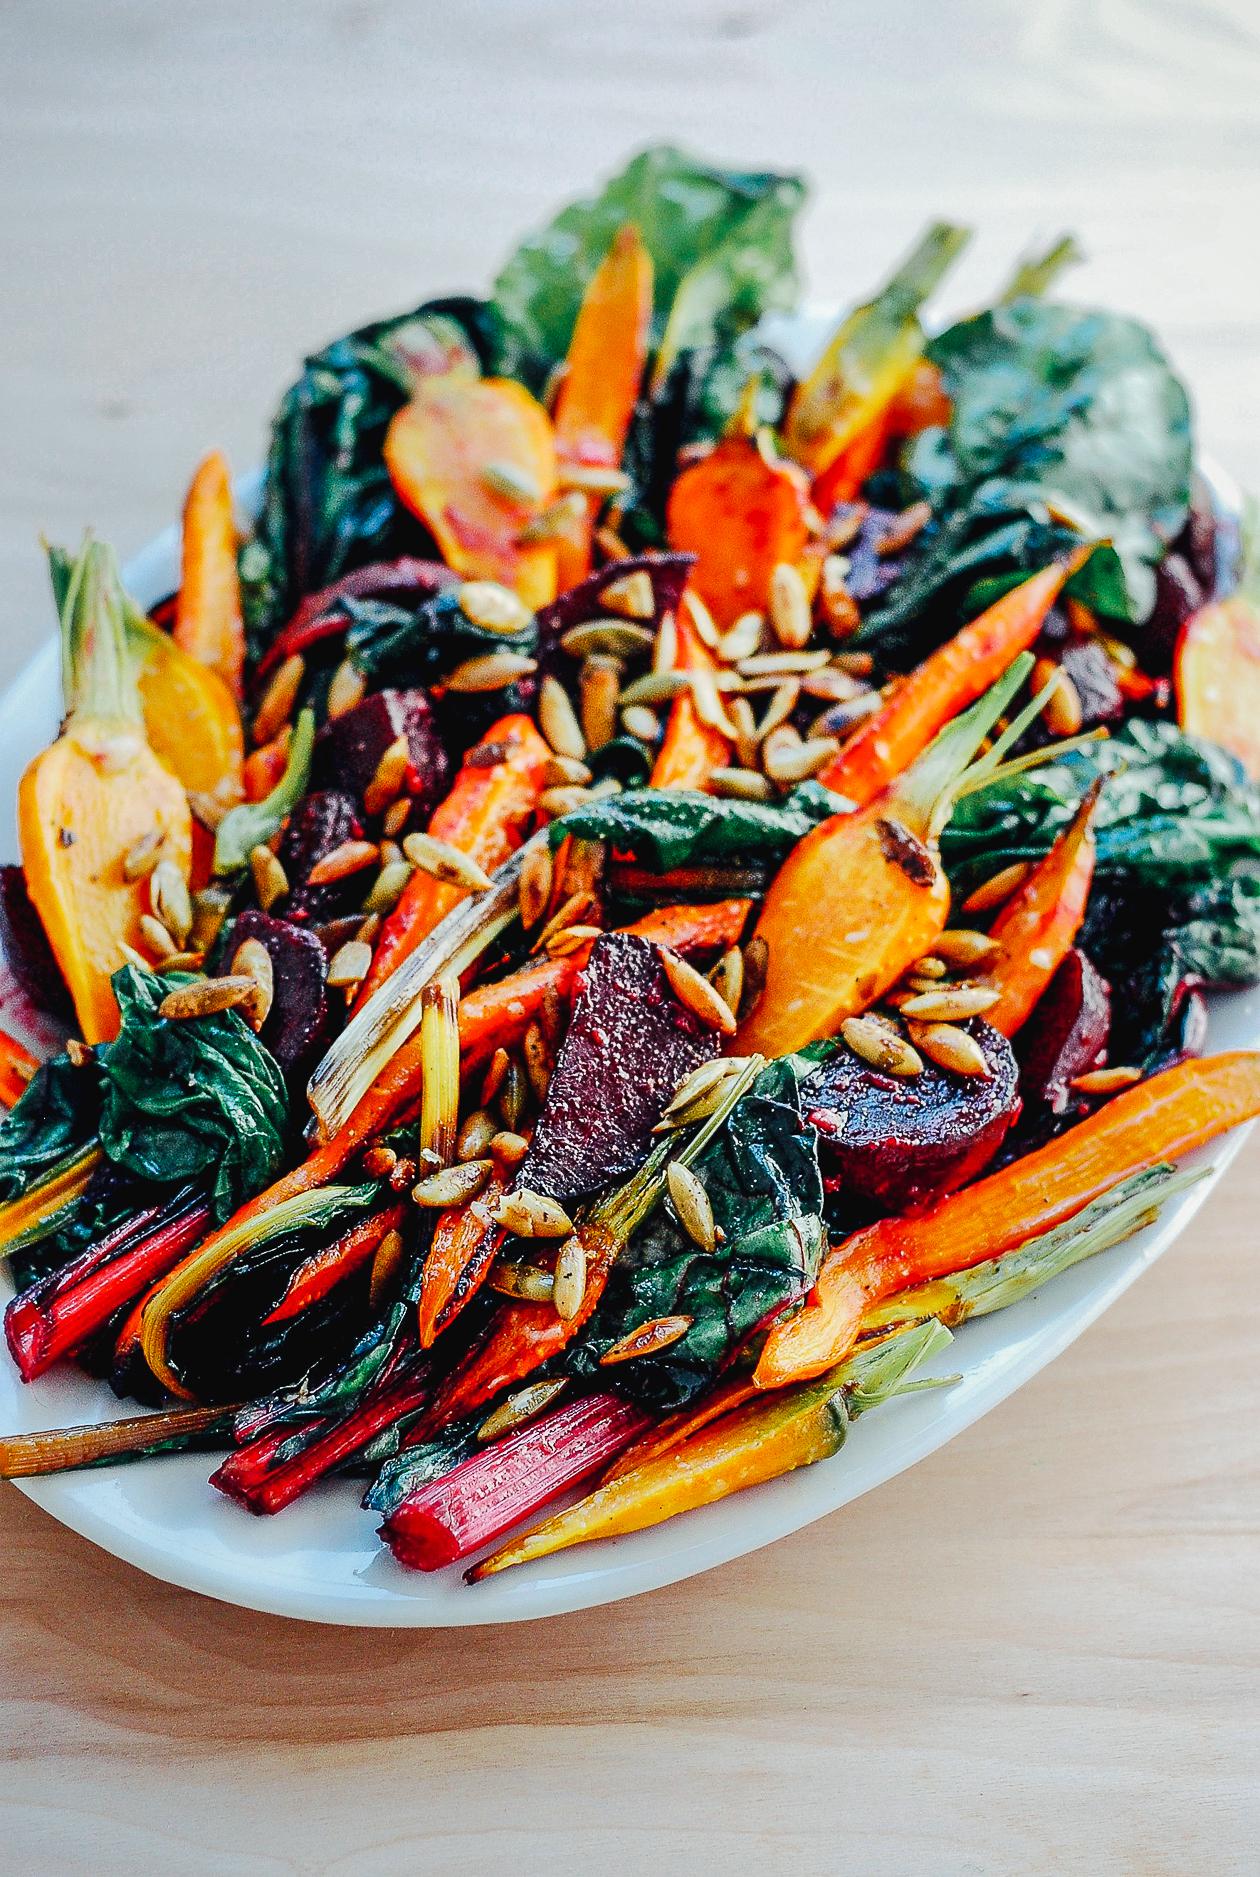 Roasted Vegetable Salad with Garlic Dressing + Toasted Pepitas | A simple and hearty roasted vegetable salad tossed in a garlic dressing and topped with toasted pepitas. A roasted vegetable salad for fall or all seasons.